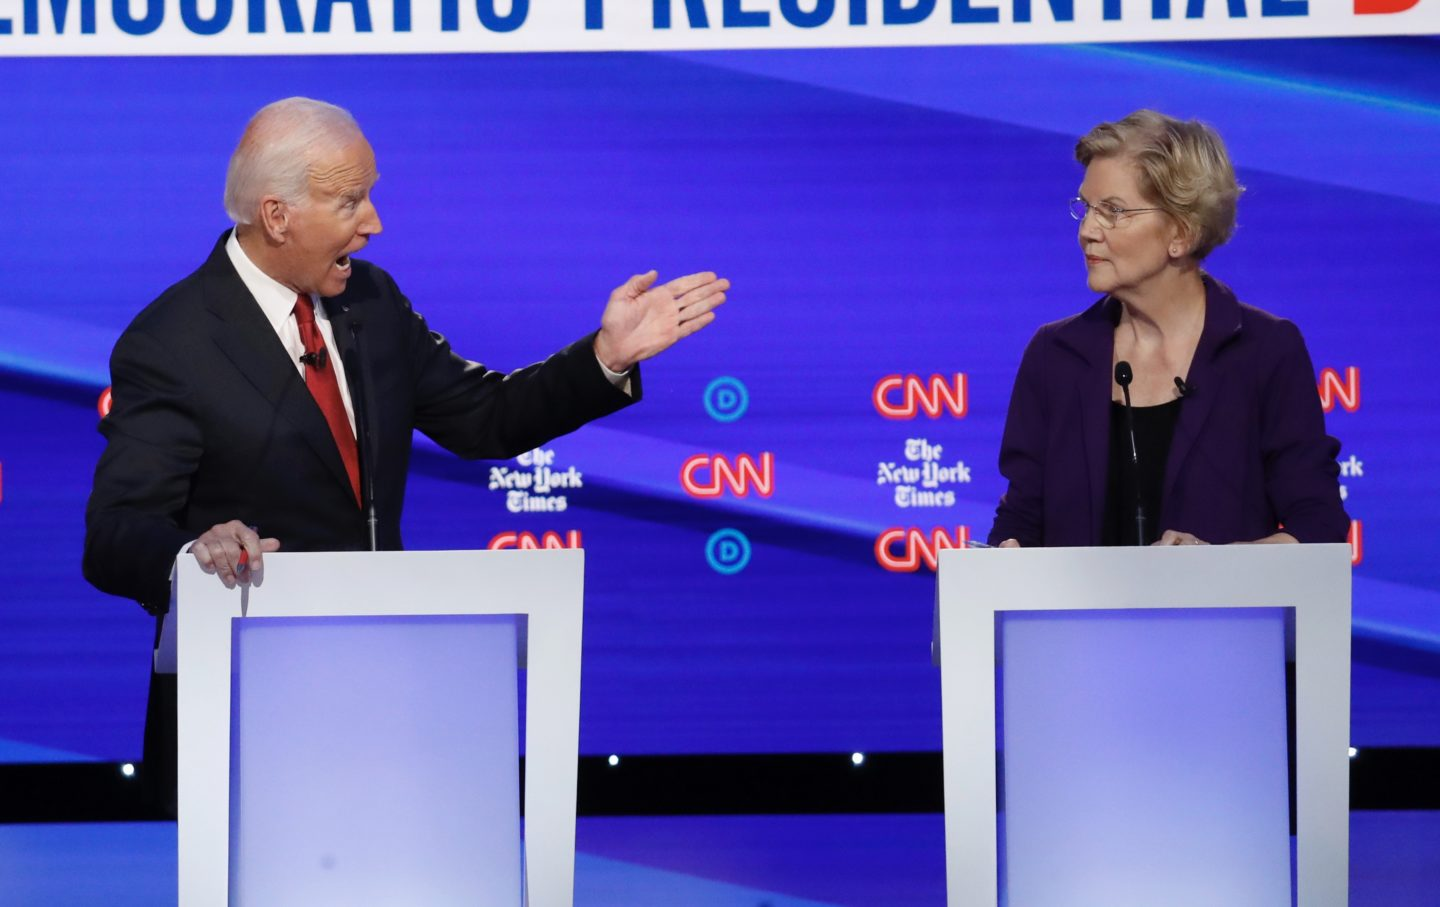 warren and biden debate